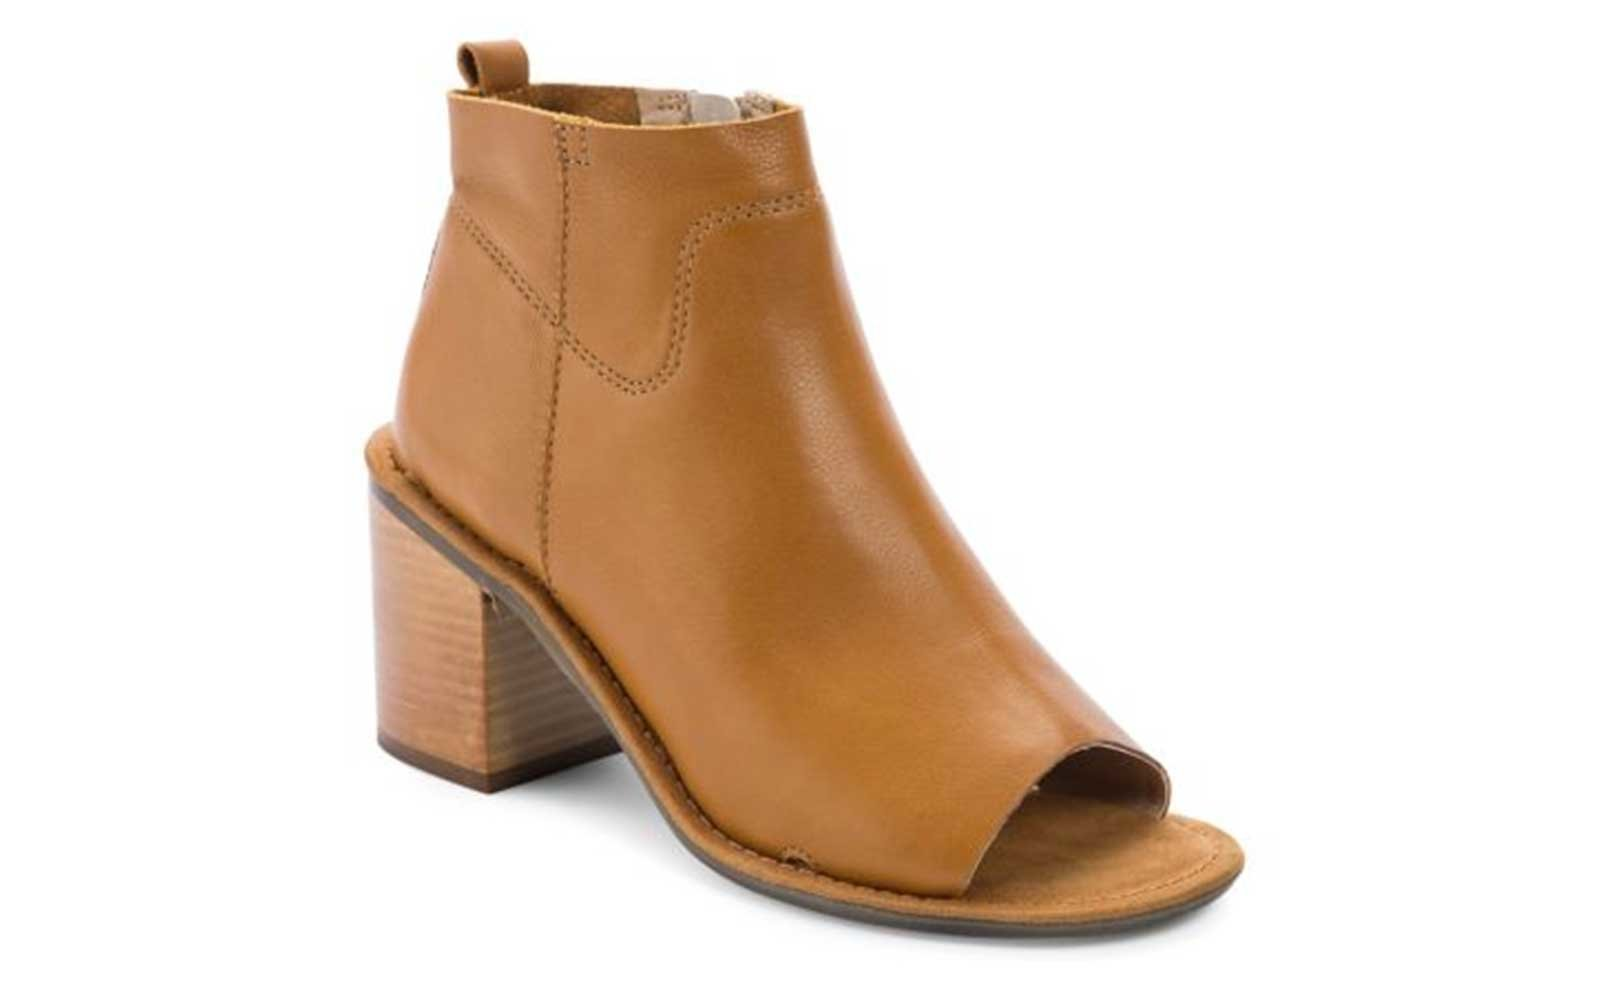 Open-Toe Booties For Fall